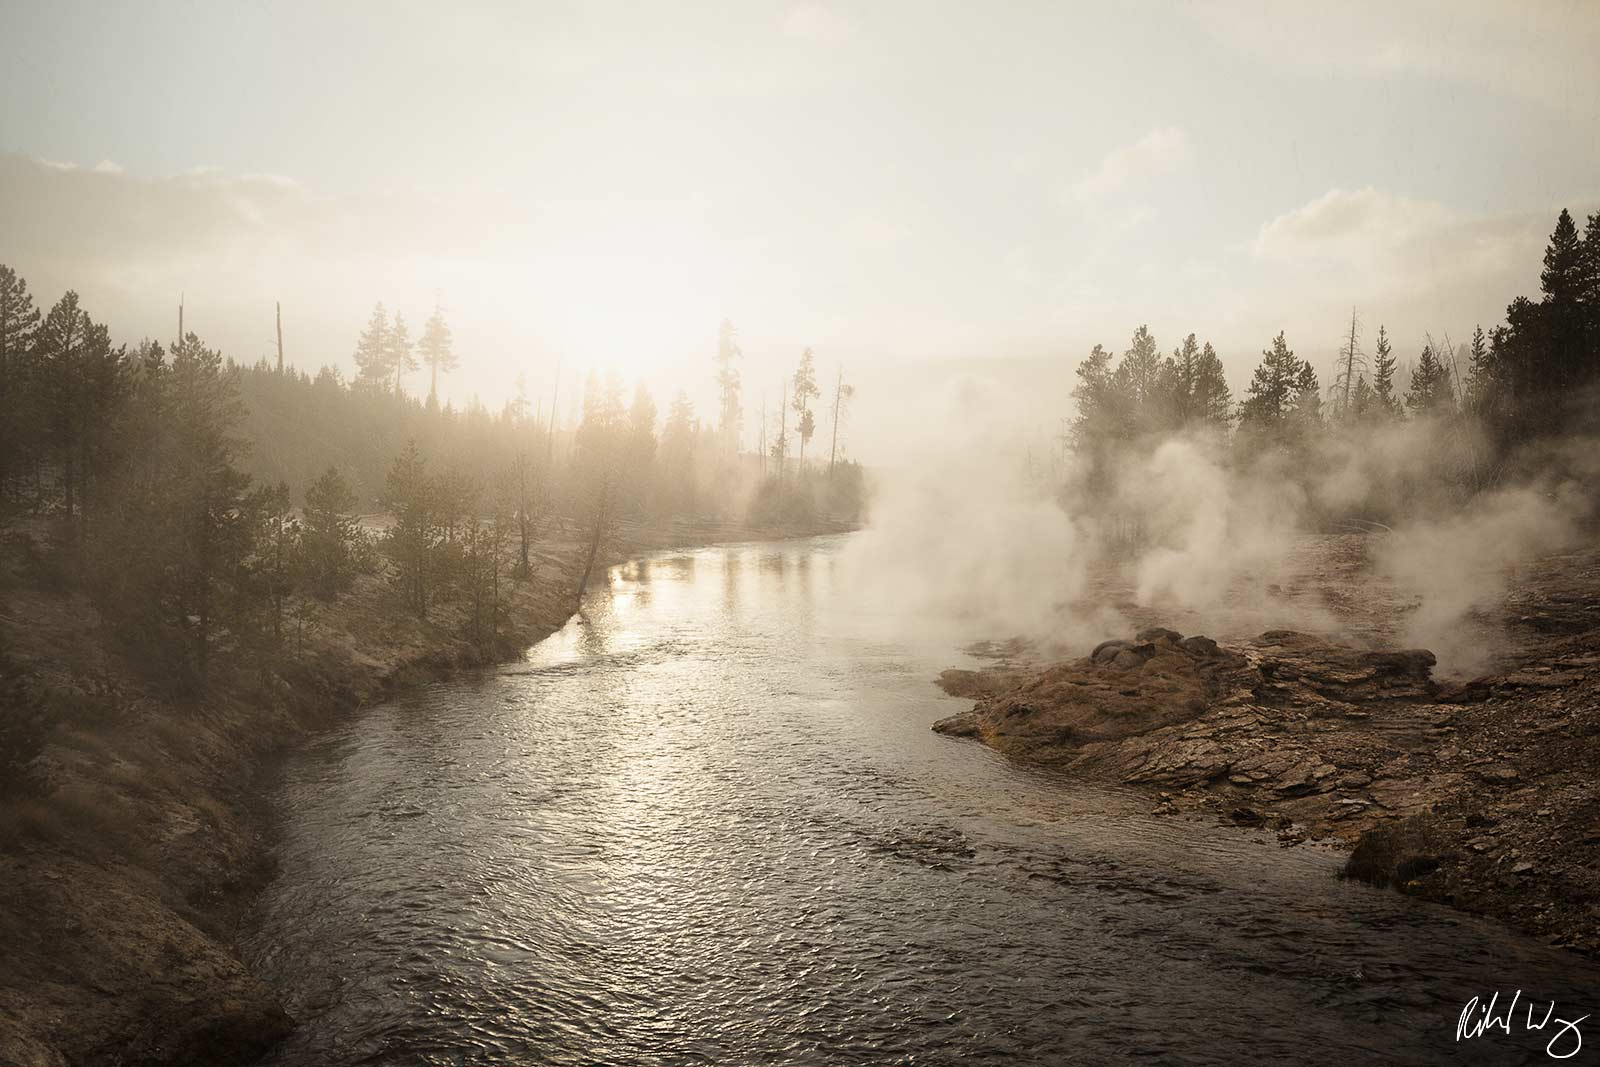 Snowing at Sunset Along Firehole River (Upper Geyser Basin), Yellowstone National Park, Wyoming What I enjoyed about visiting...